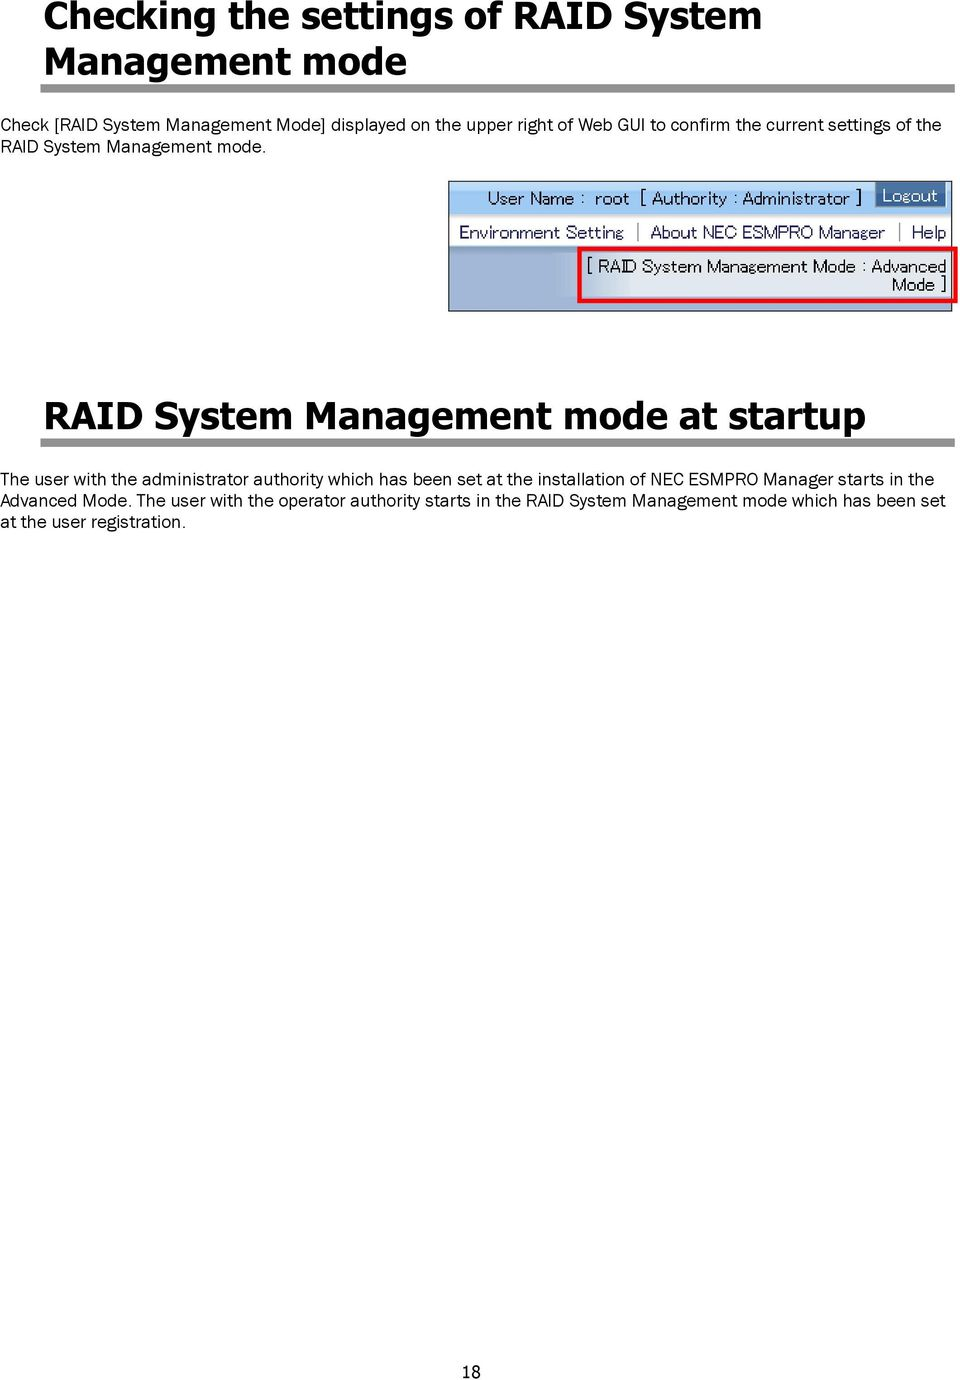 RAID System Management mode at startup The user with the administrator authority which has been set at the installation of